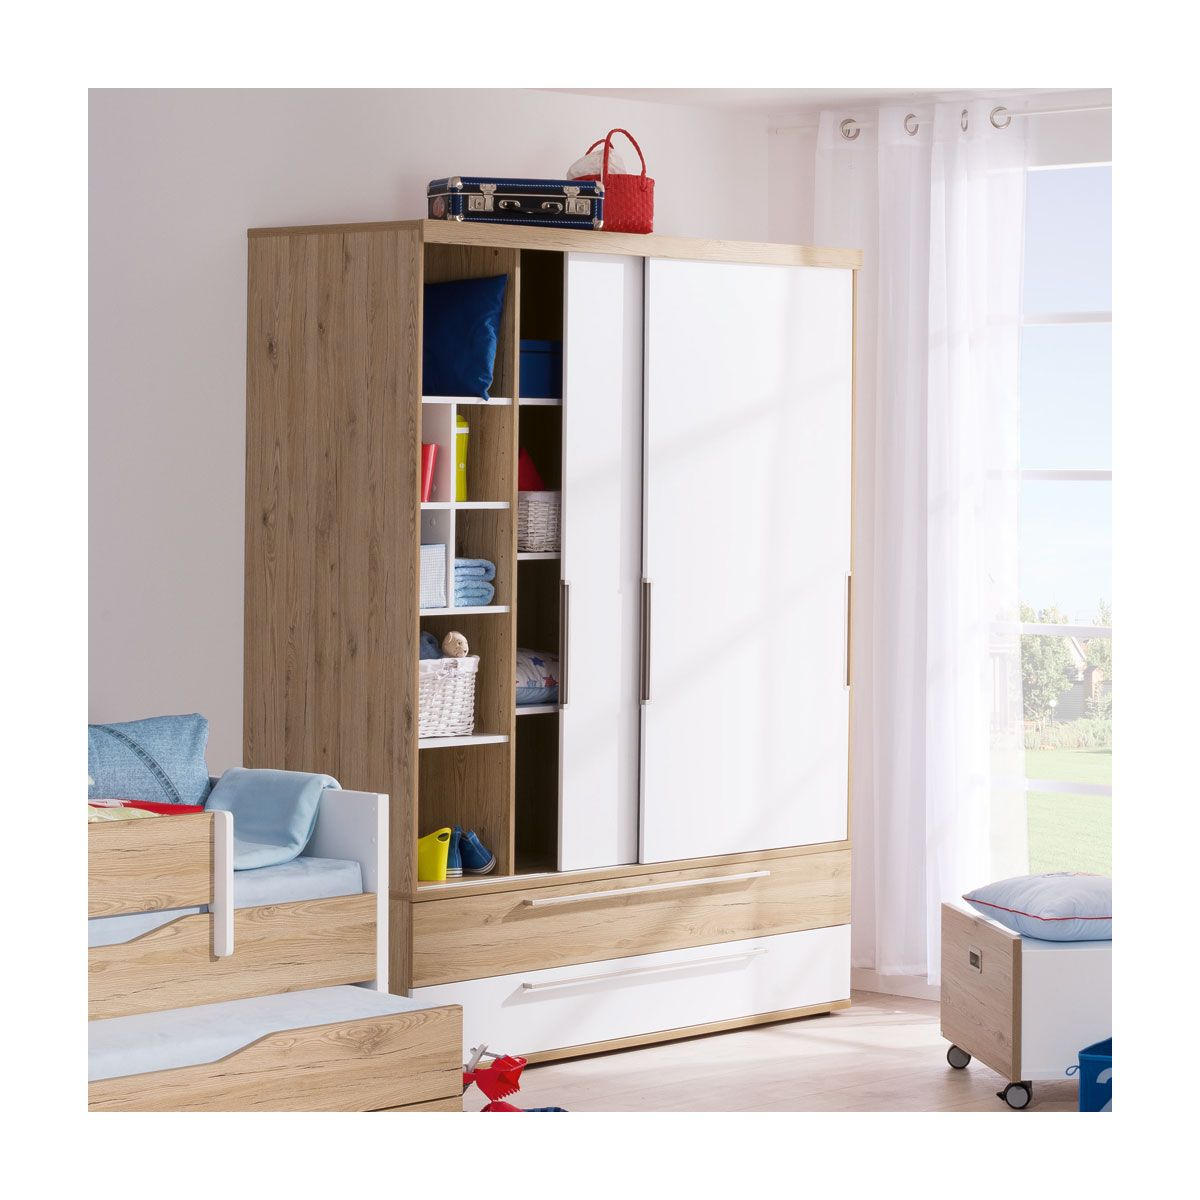 einbau kleiderschr nke mit schiebet ren schlafzimmer luca pinie wei set komplett 4 tlg. Black Bedroom Furniture Sets. Home Design Ideas